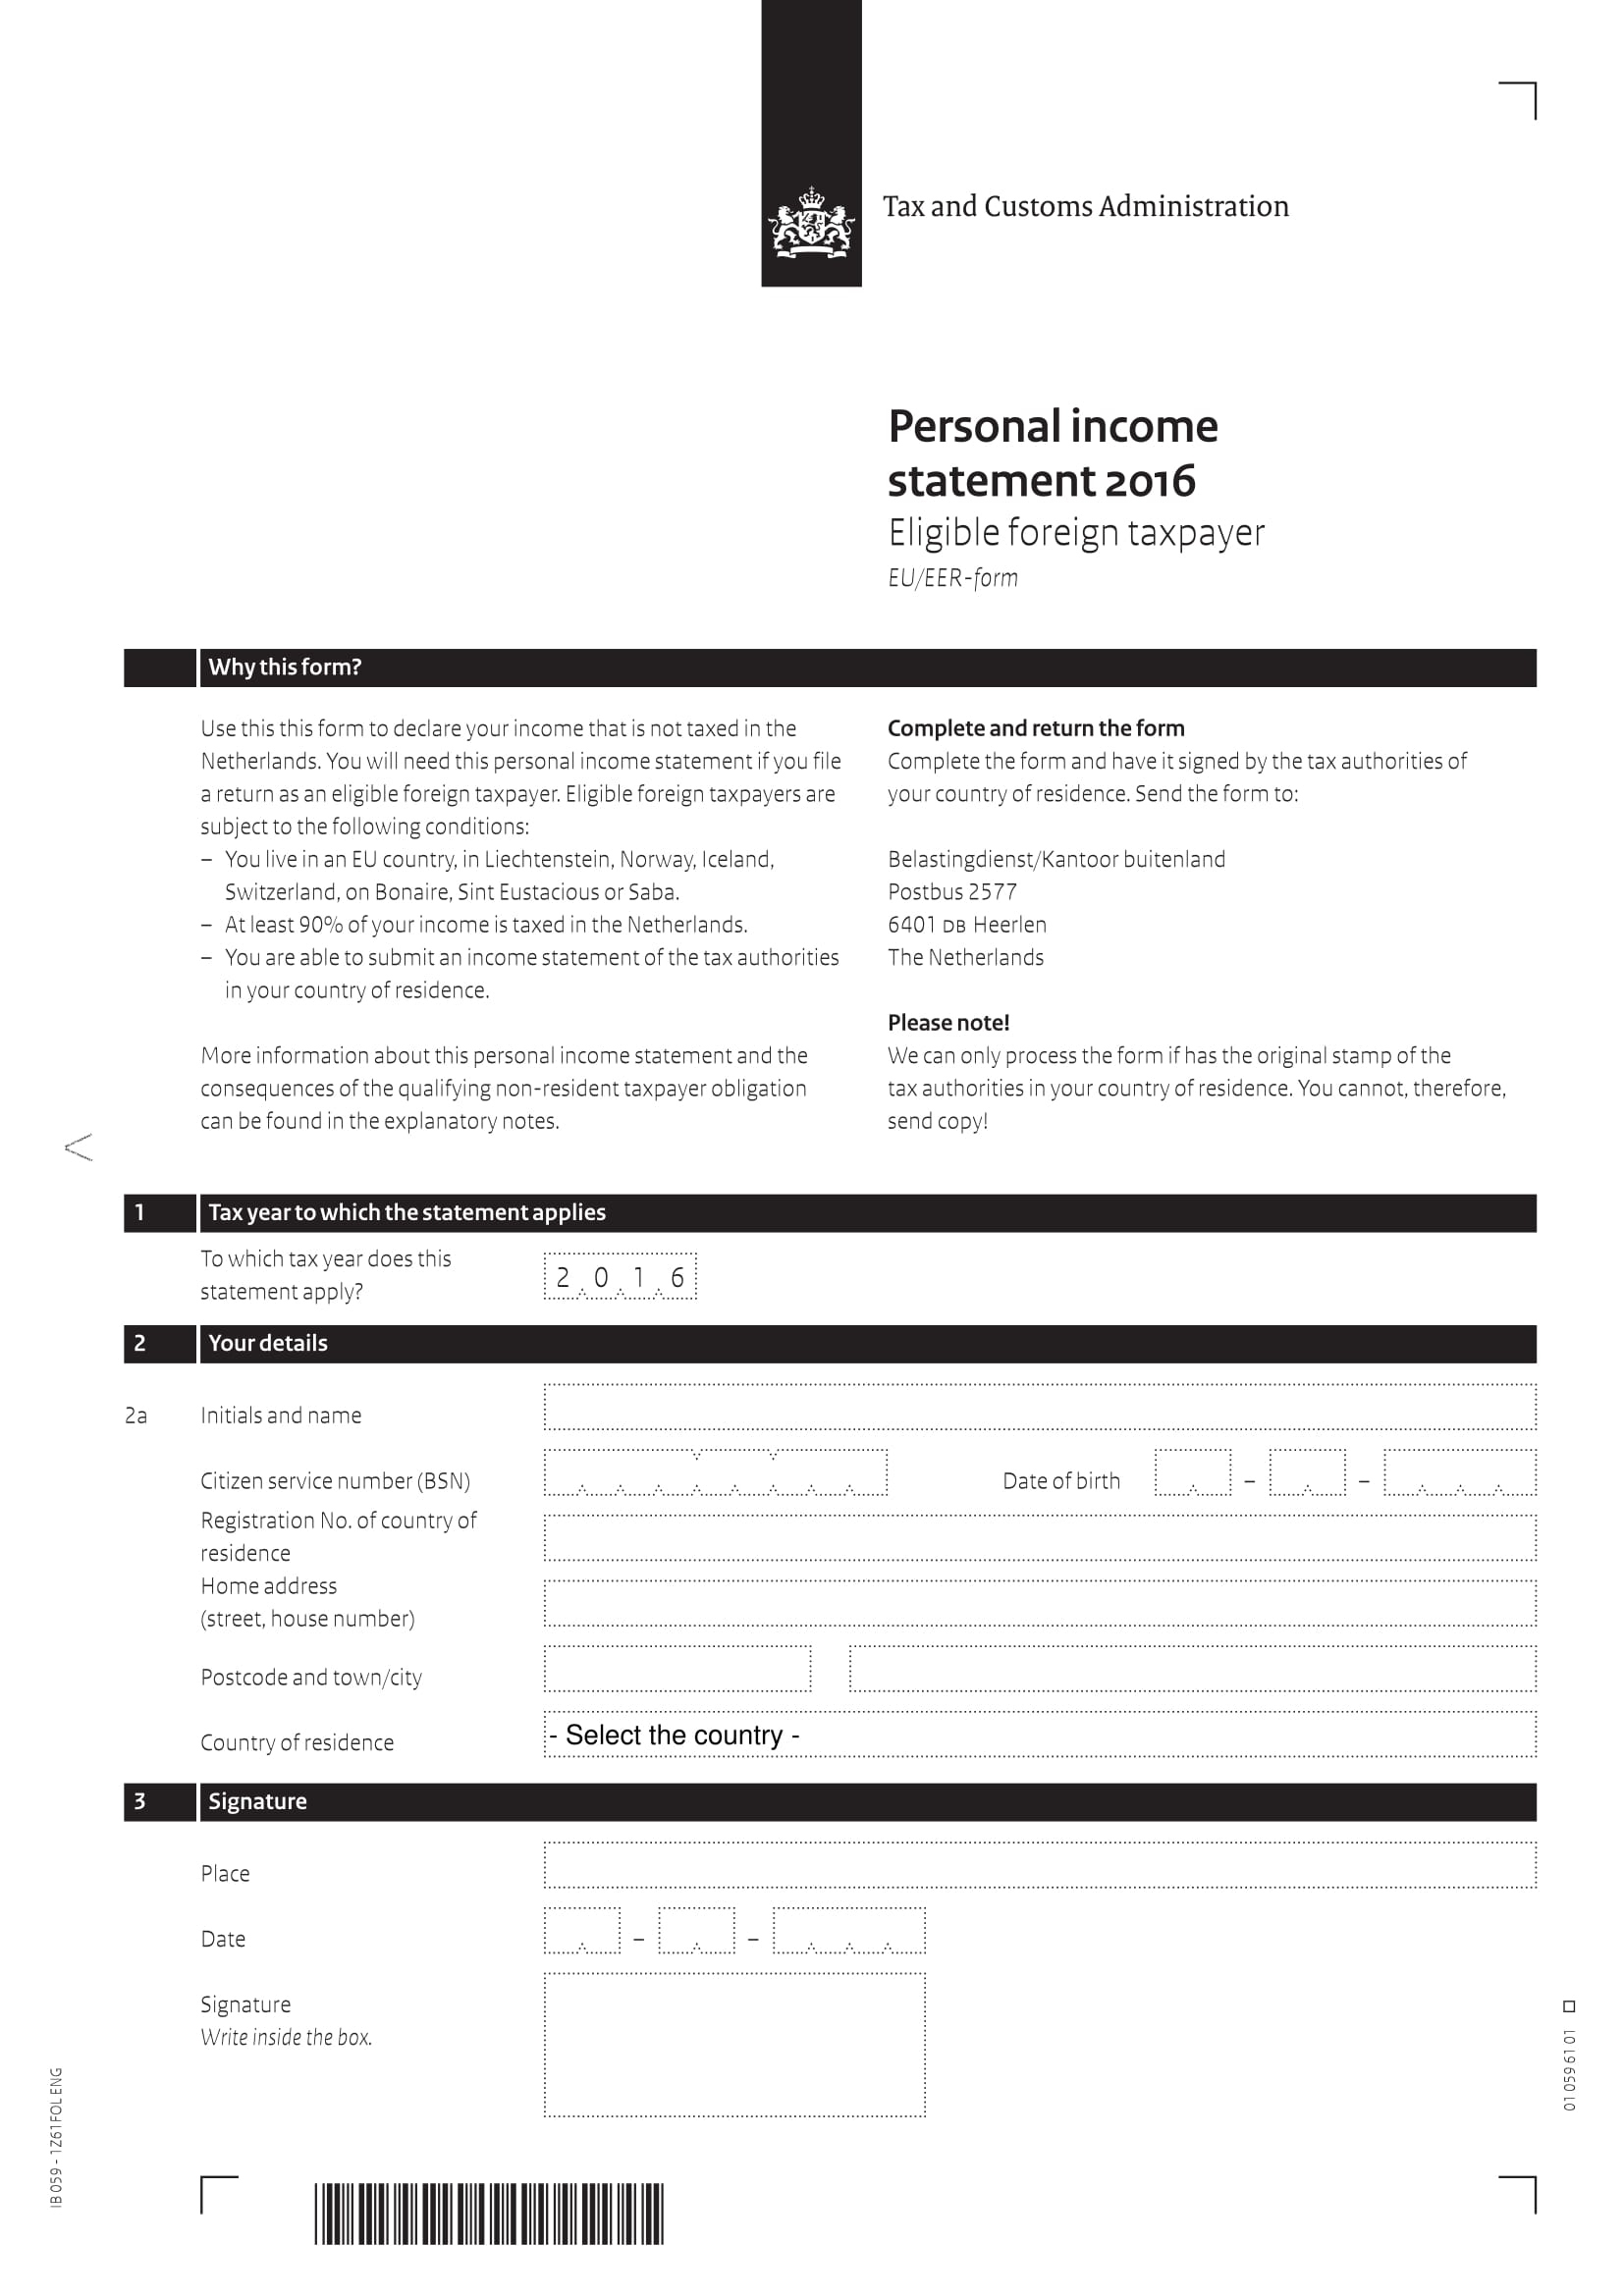 foreigner taxpayer income statement form 1